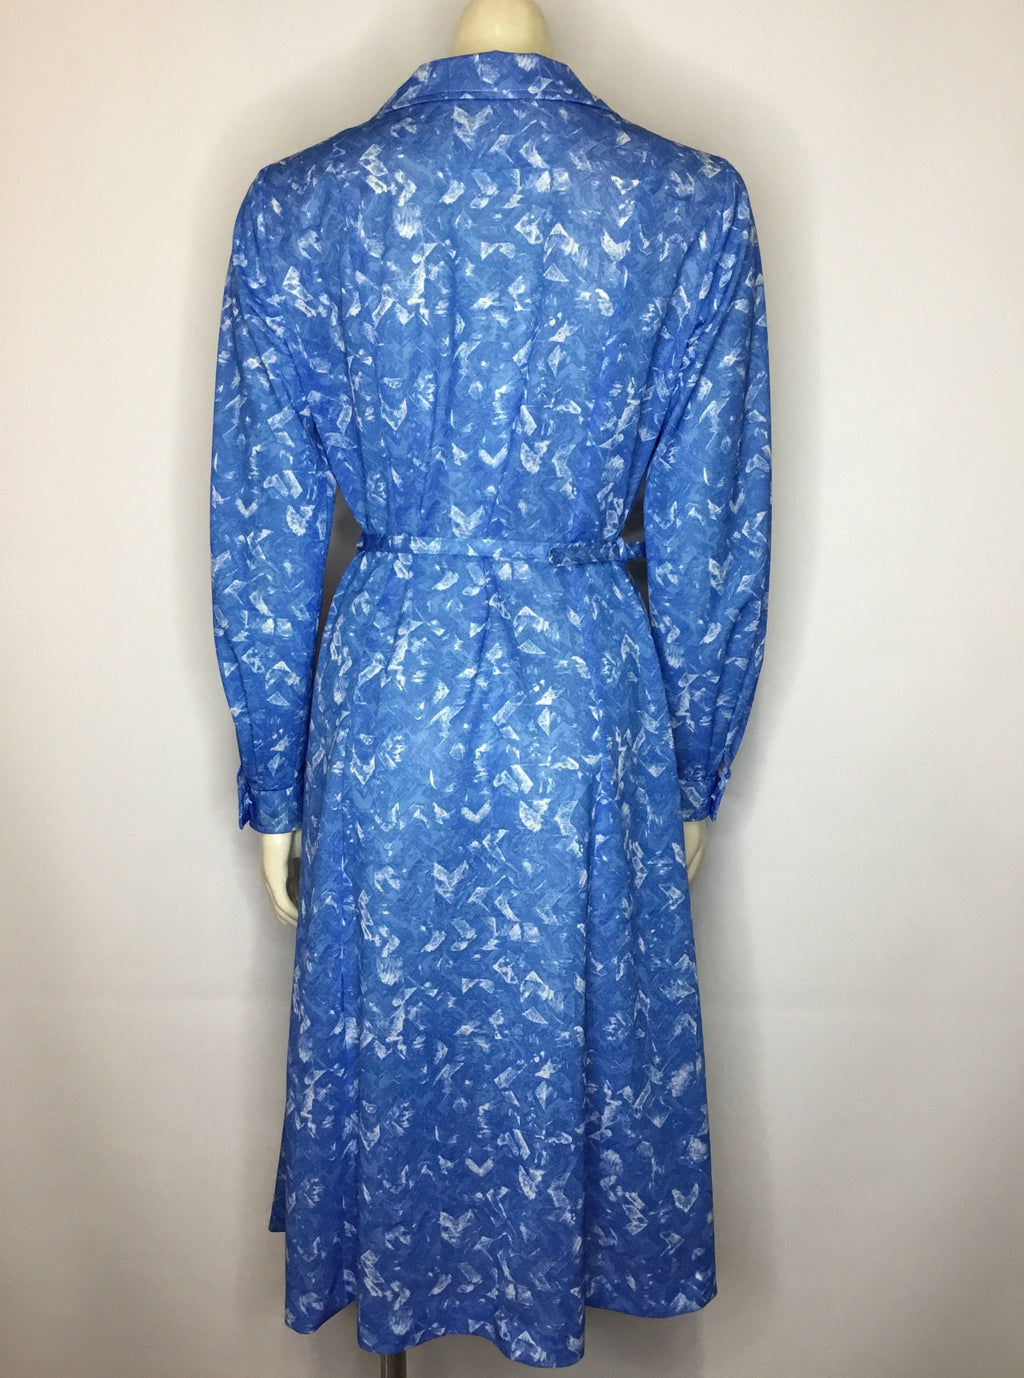 Antonia Blue Dress - AS IS - discolouration